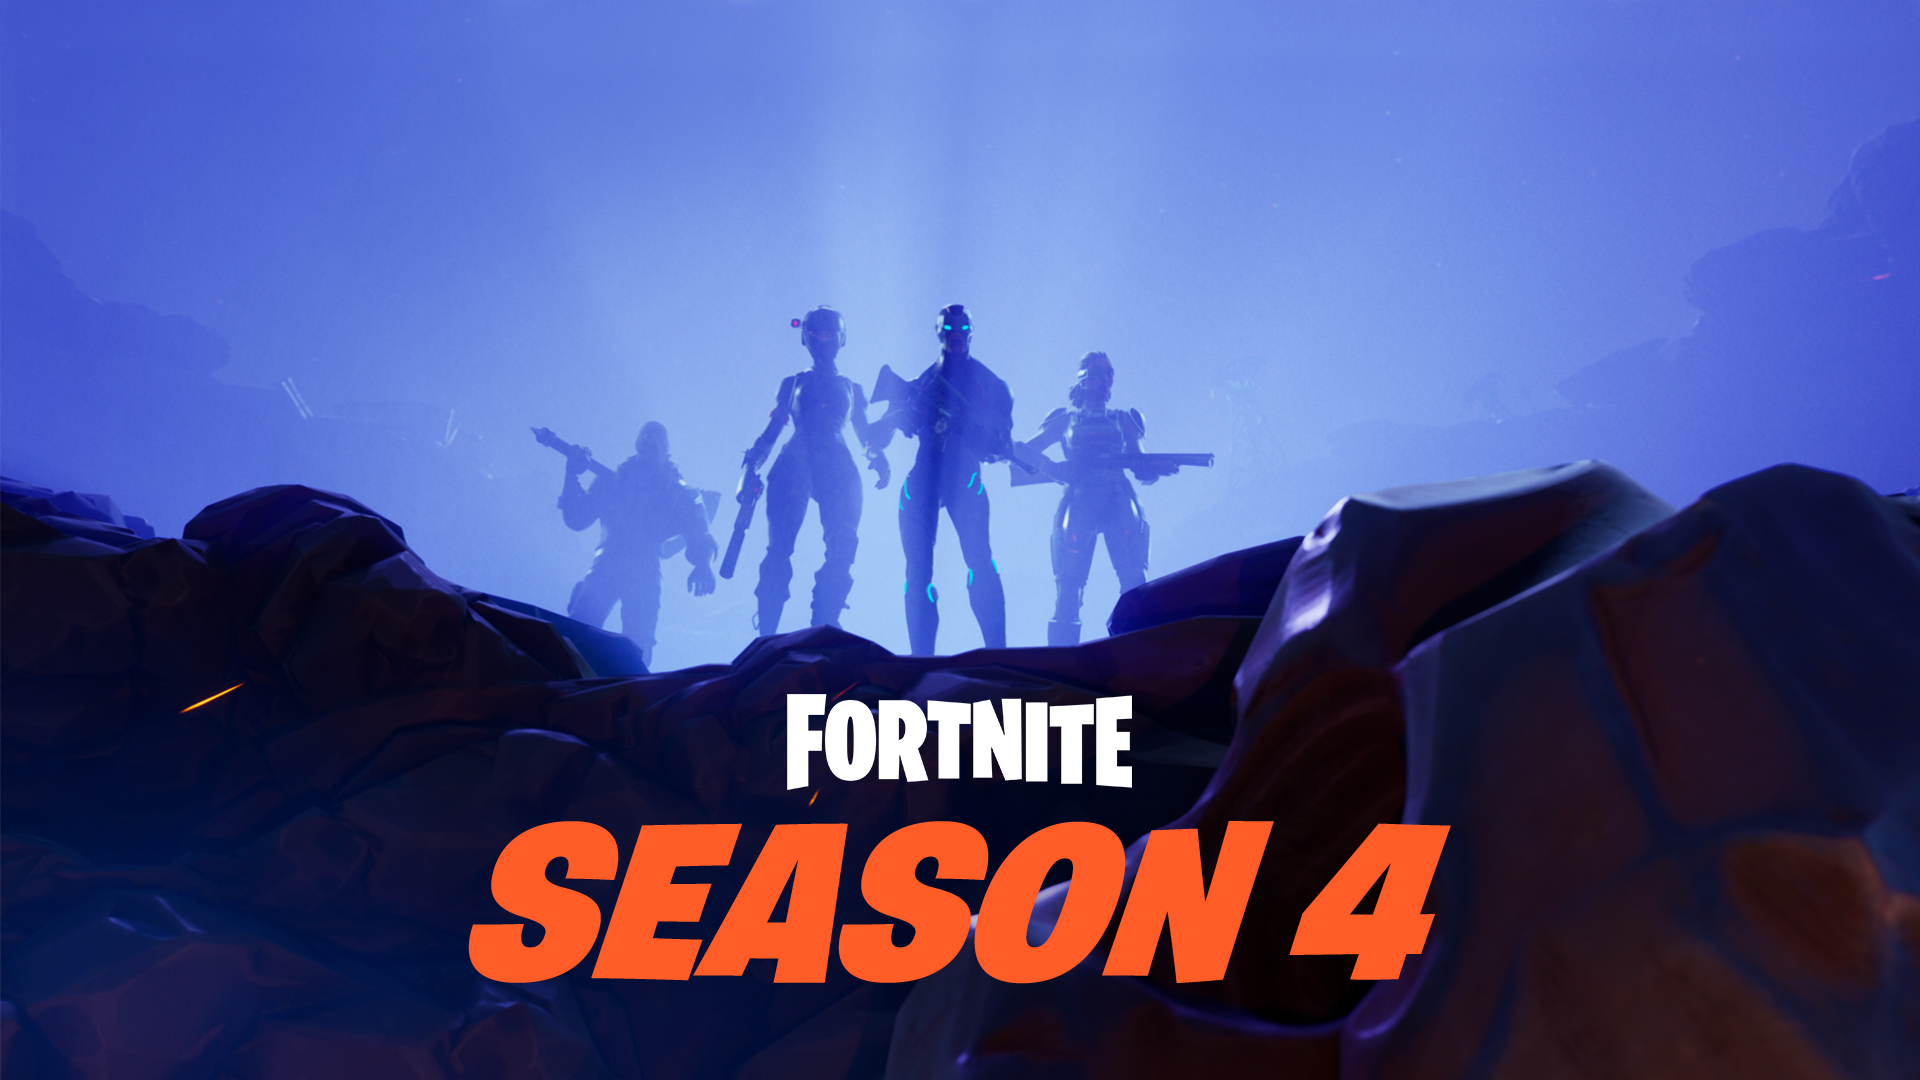 Fortnite Season 4 Hd Games 4k Wallpapers Images Backgrounds Photos And Pictures